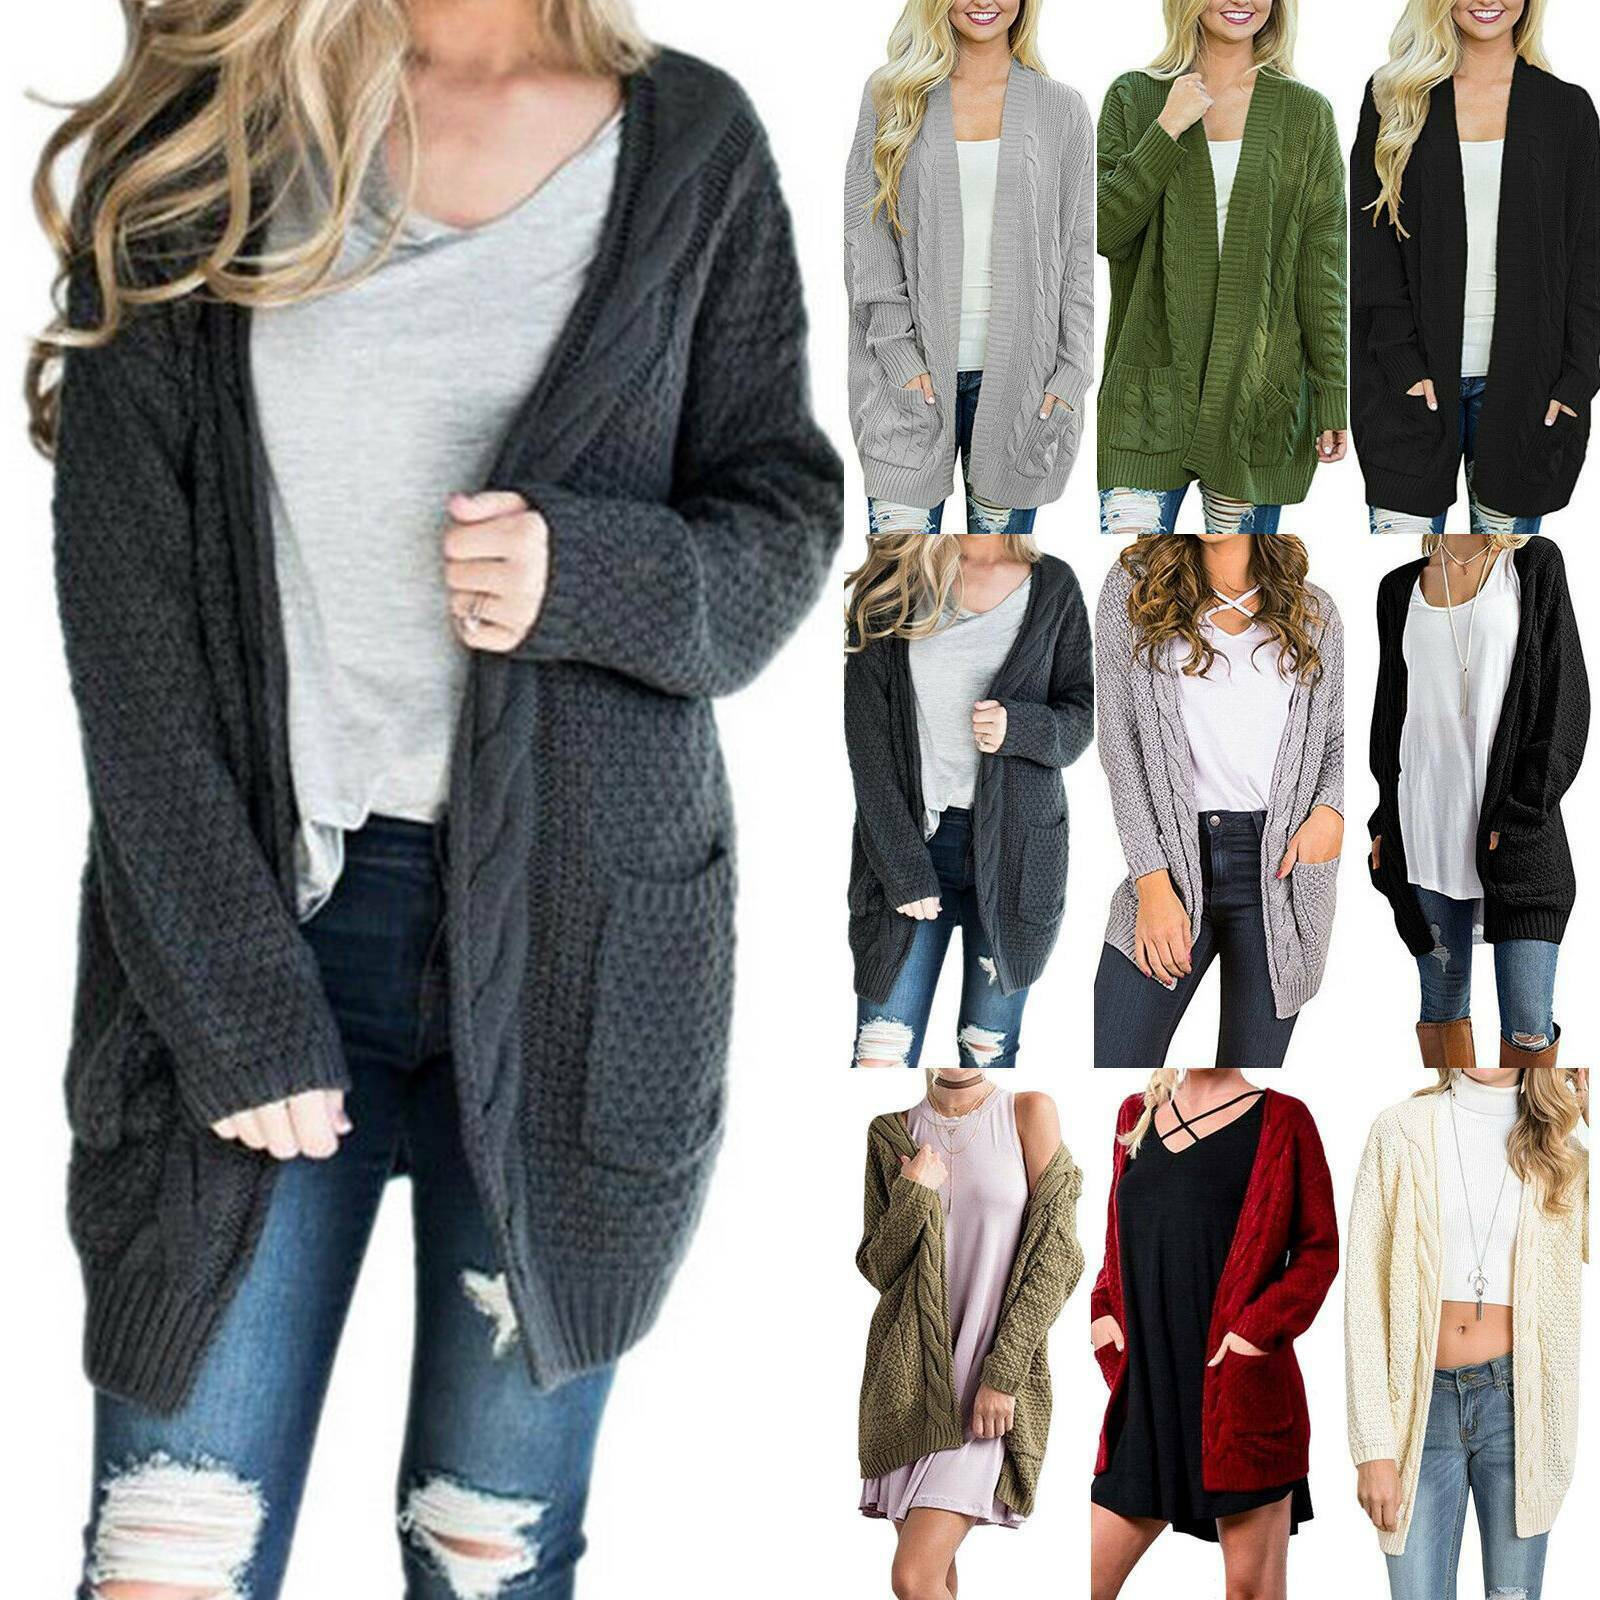 LADIES CARDIGAN WOMEN'S CHUNKY CABLE